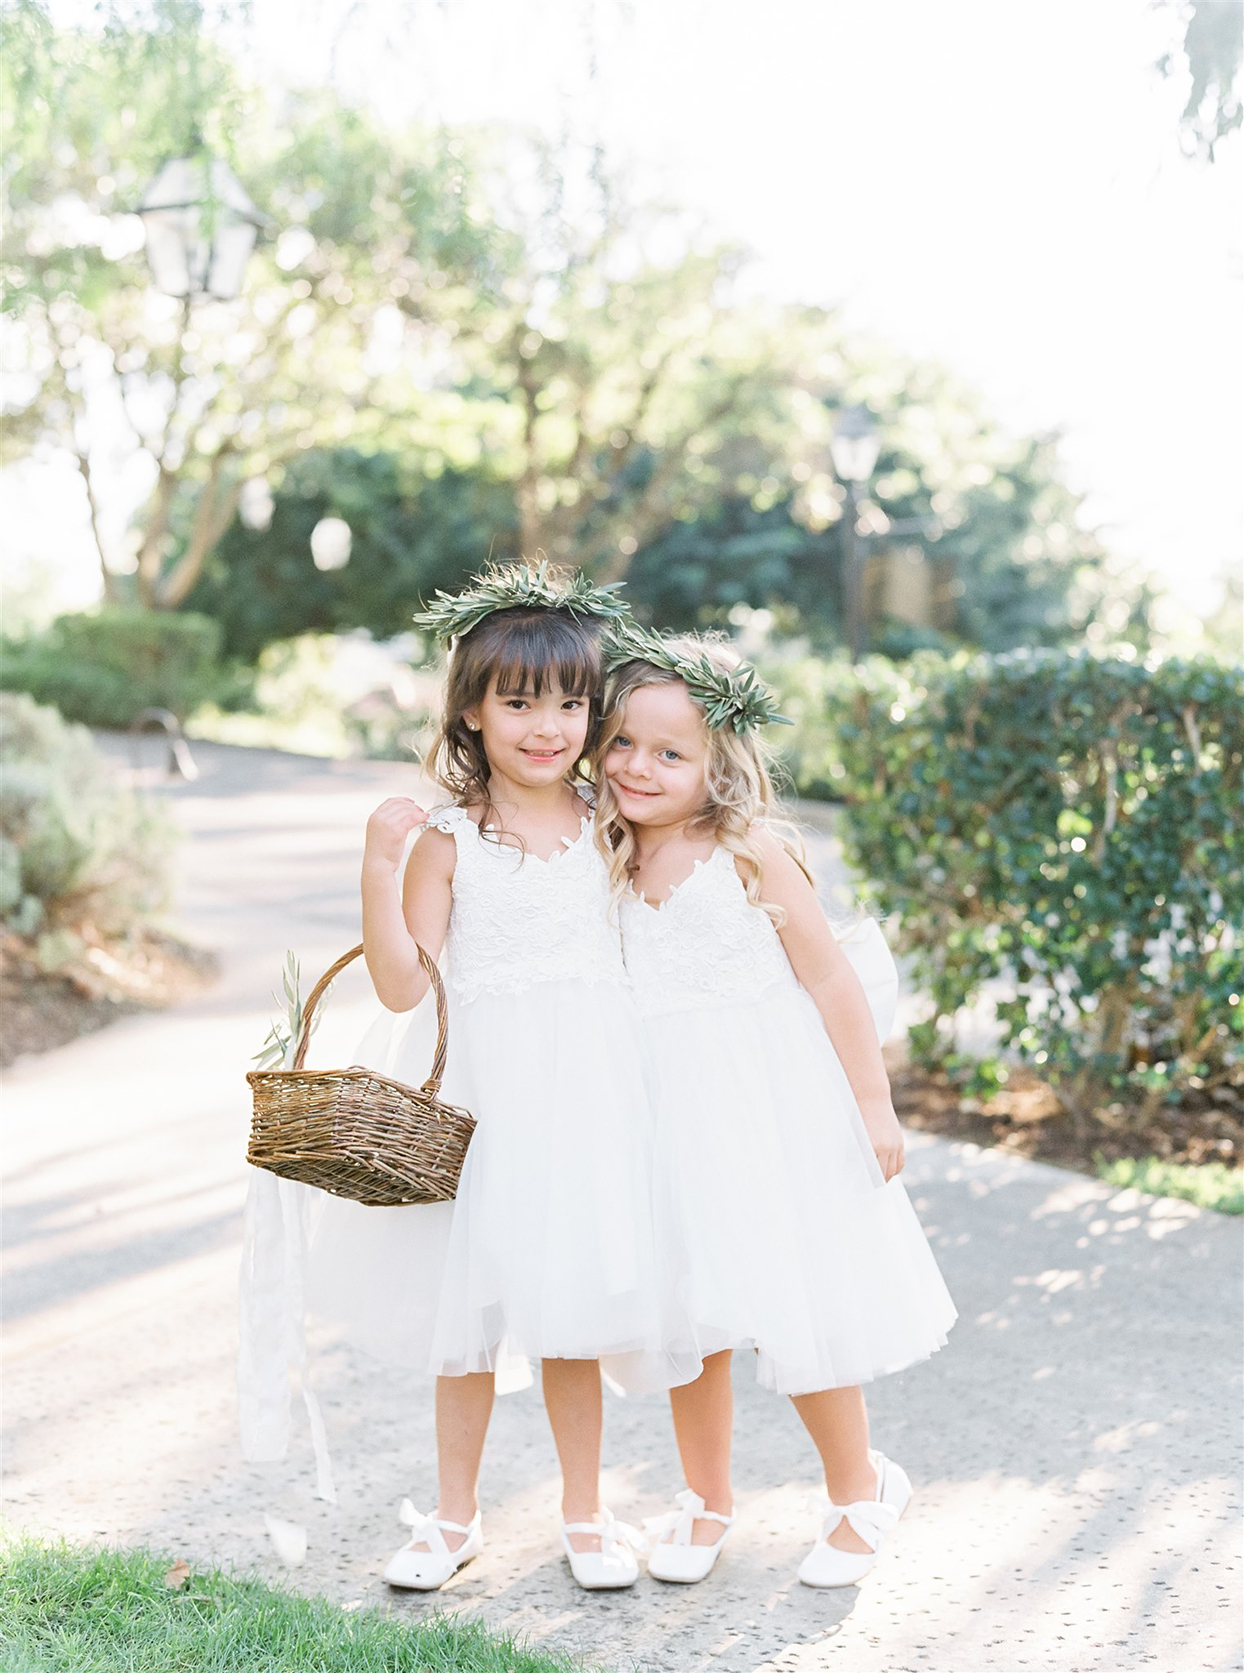 Flower girls in white dresses with tulle skirts and lace accents, paired with bow-tied flats